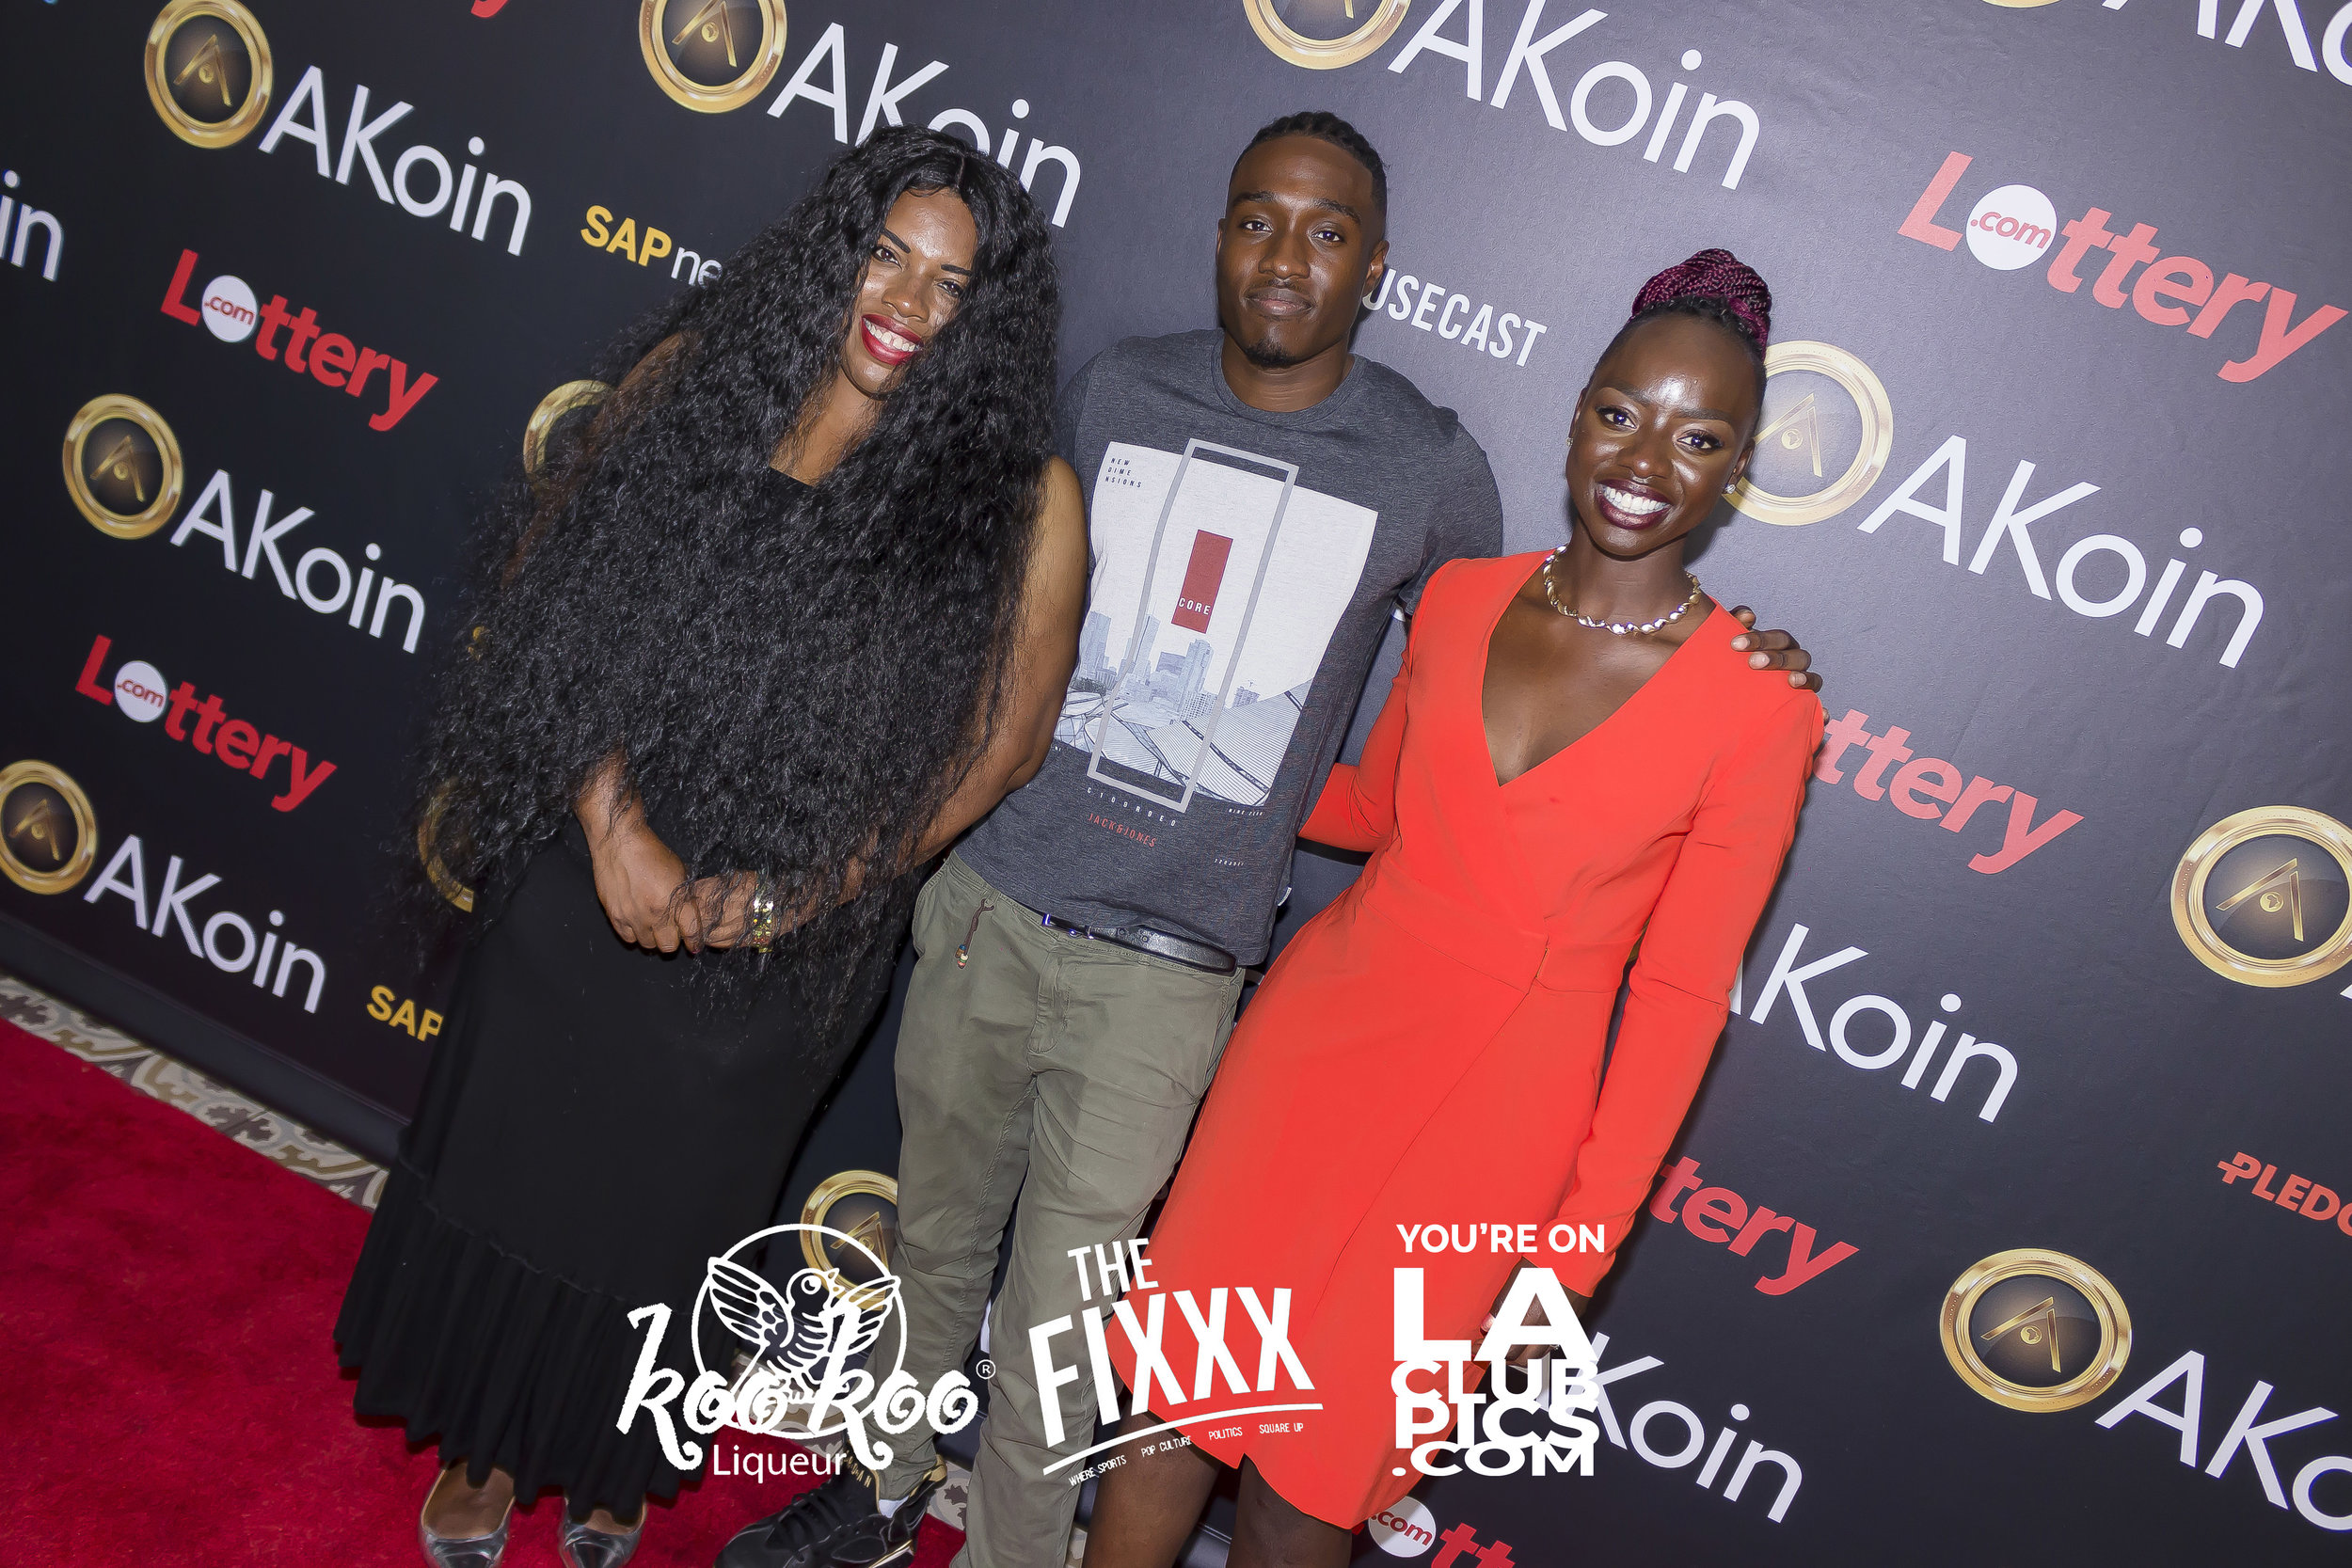 AKoin Official Launch - 08-07-18_157.jpg